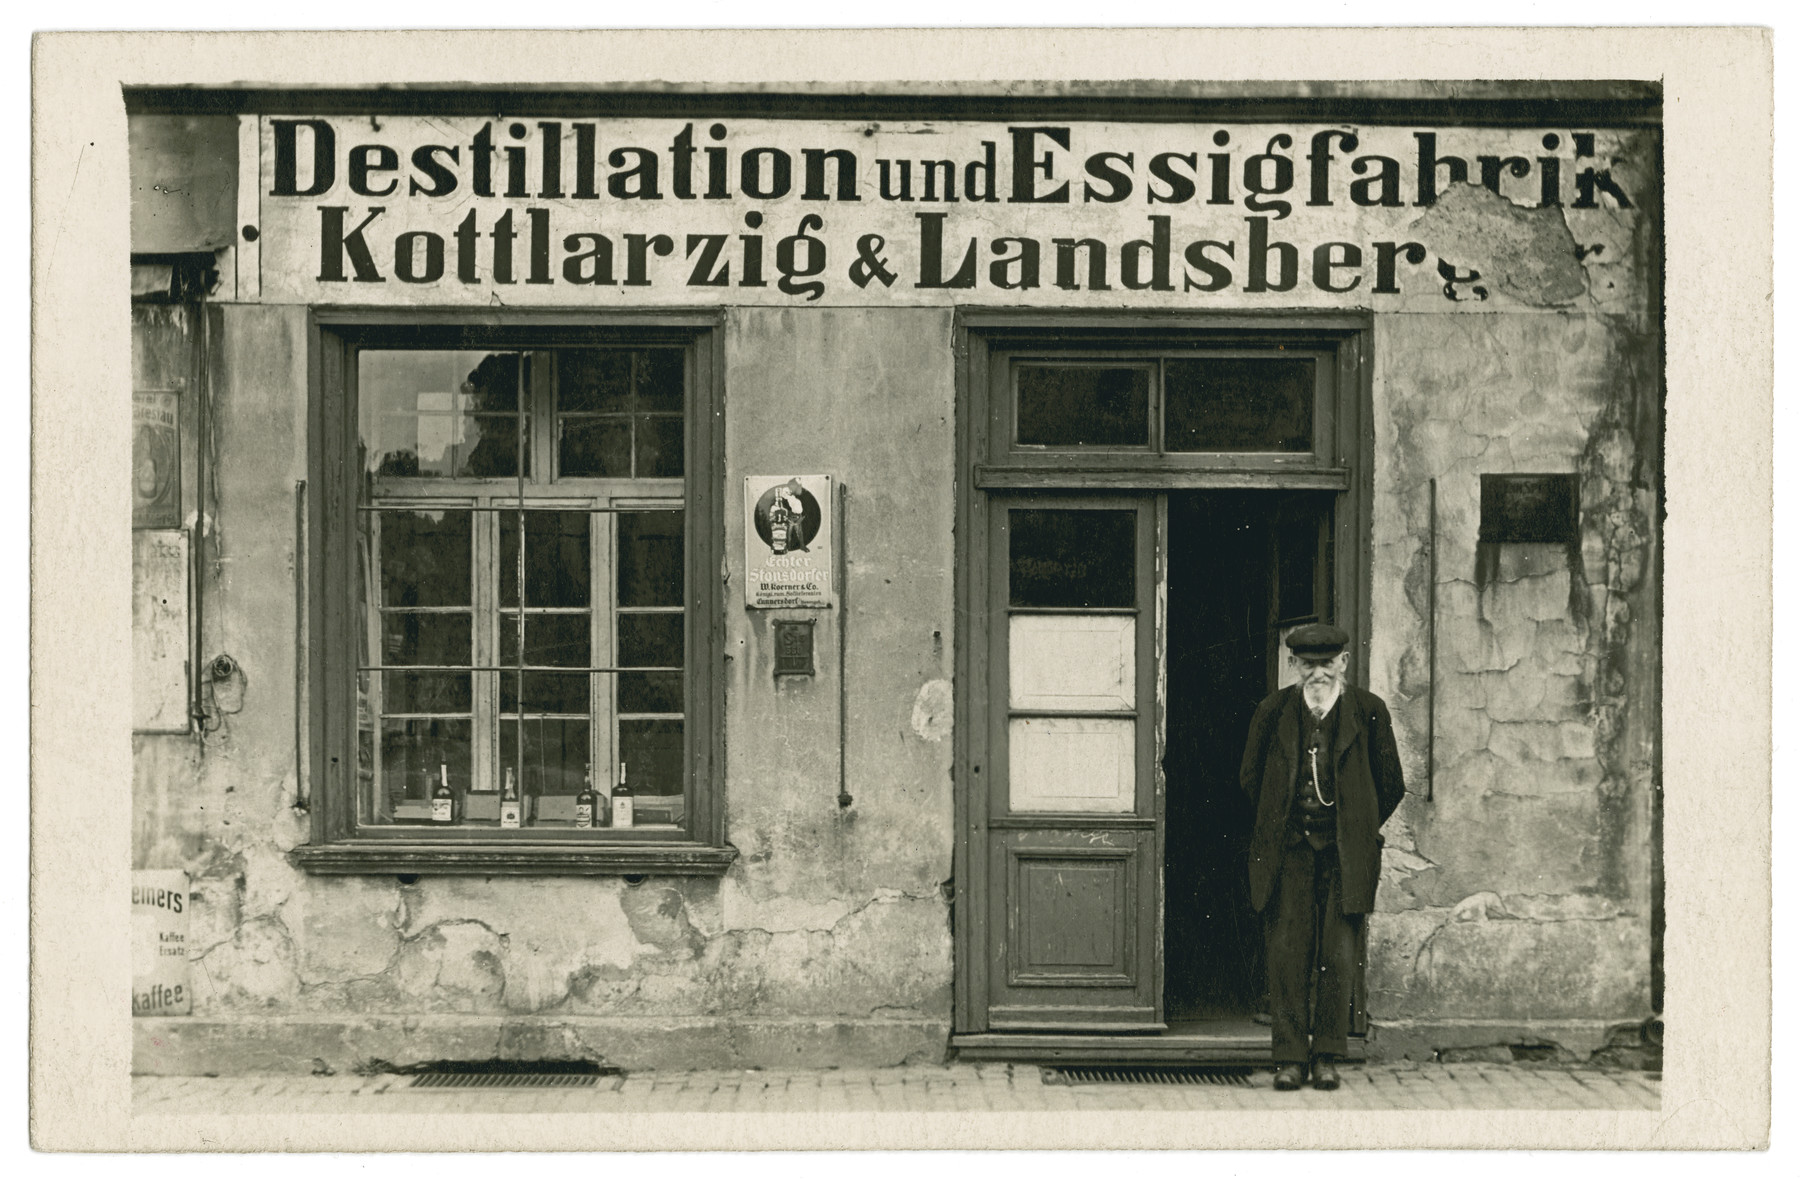 Samuel Kottlarzig (a great uncle of the donor) stands in front of his distillery for wine and vinegar in Ohlau, Schlesien, Germany.   He and his three children Else, Sofie and Alfred also owned a pub in Ohlau .The three of them were killed by the Nazis in concentration camp - probably Auschwitz.  Their sister Regina survived Terezin.